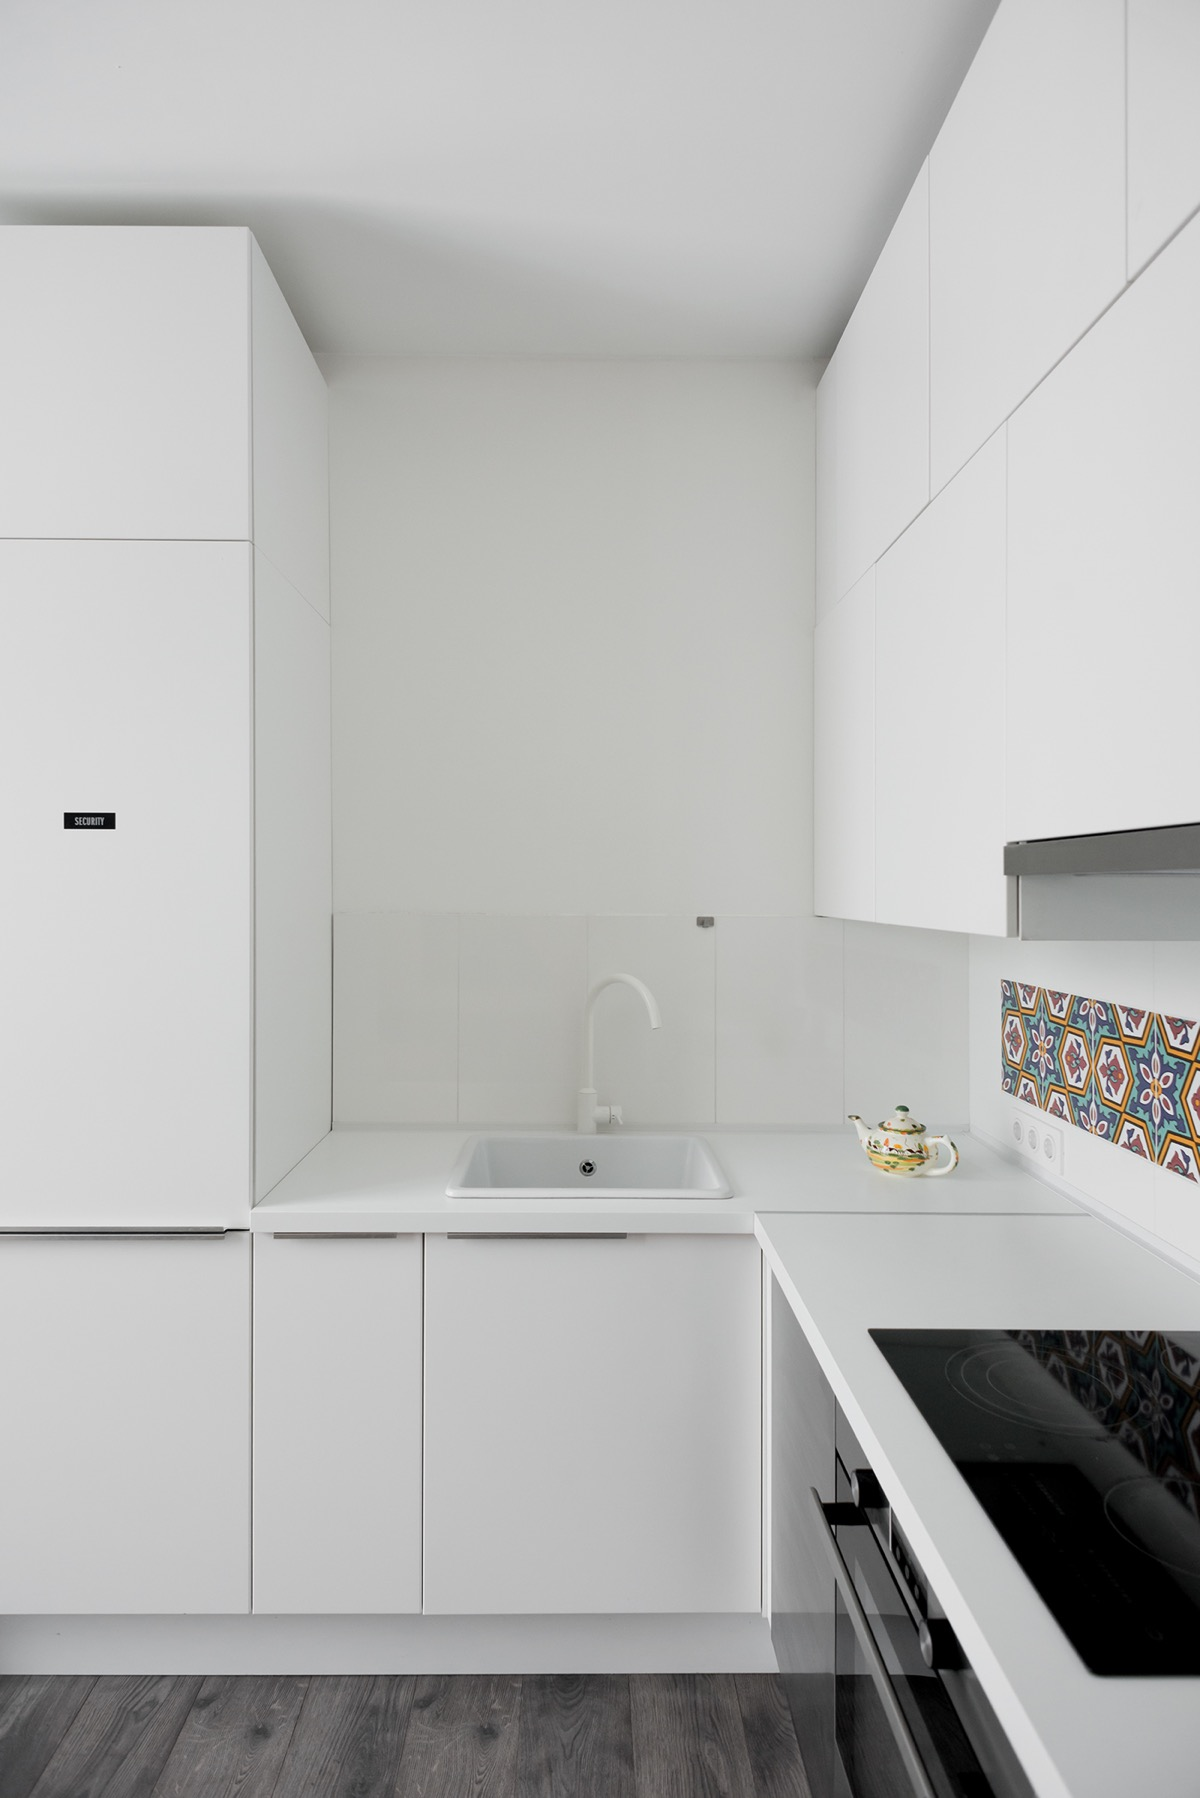 50 Lovely L-Shaped Kitchen Designs And Tips You Can Use From Them images 42